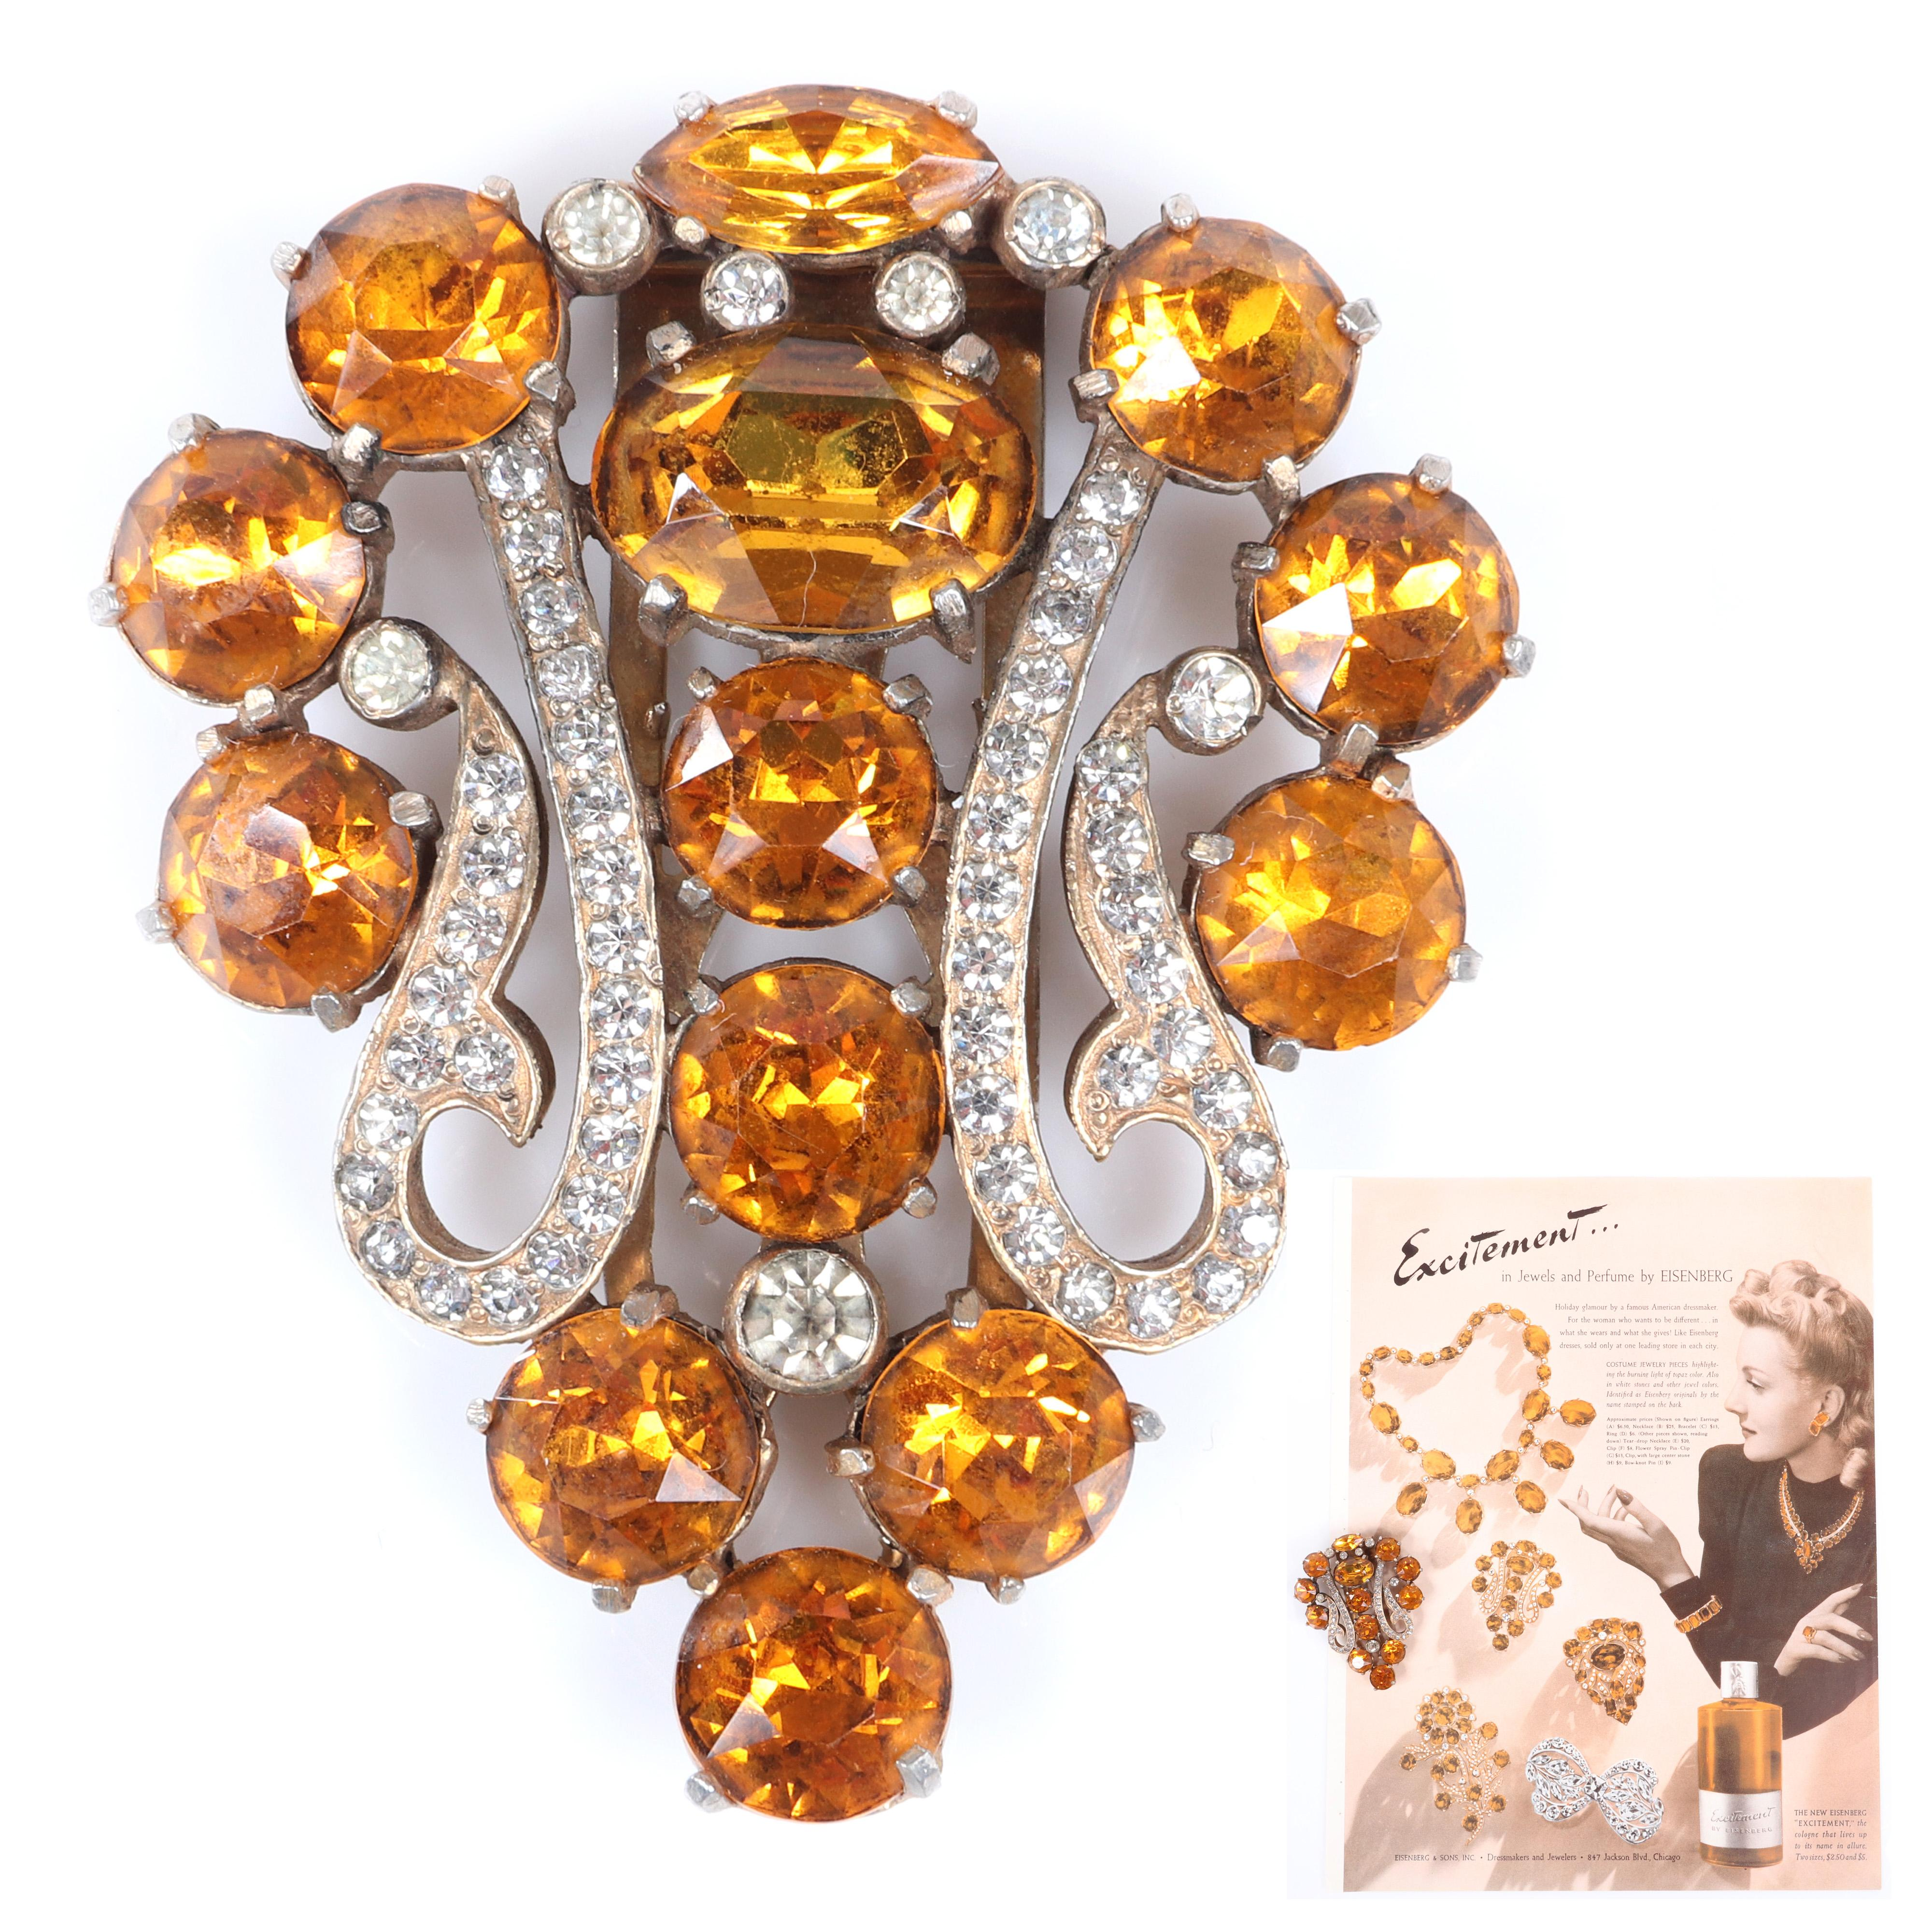 """Eisenberg Original topaz crystal shield fur clip with gold washed pot metal, large round topaz faceted crystals and bezel set rhinestones. Includes original 1940 Vogue advertisement featuring brooch. 2 3/4"""" x 2 1/4"""""""